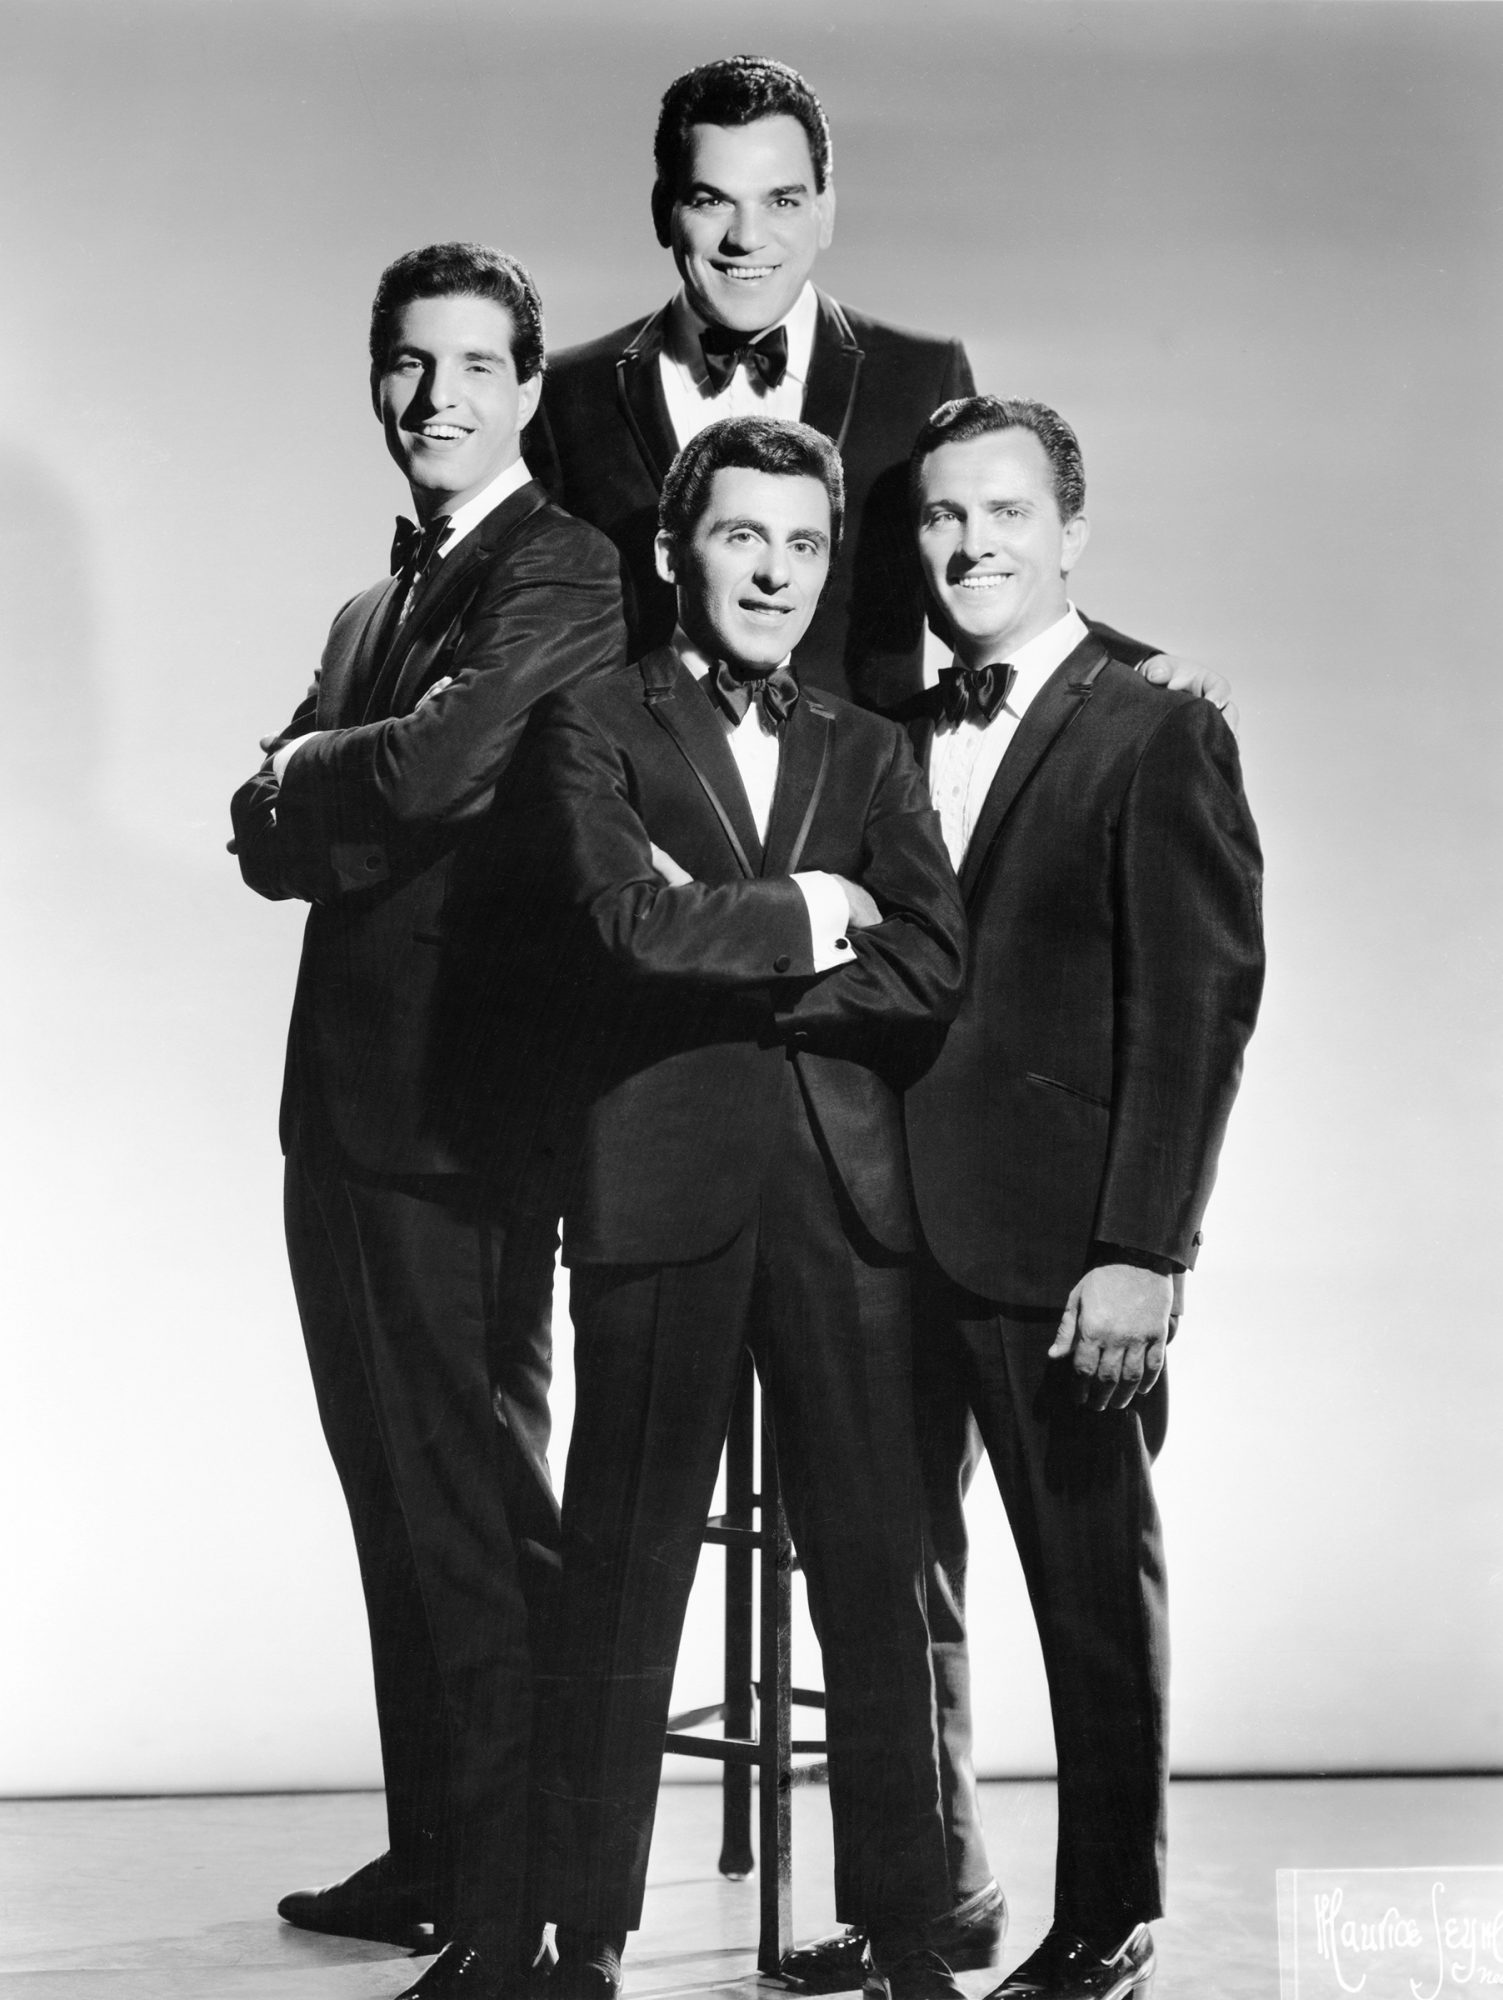 The Four Seasons Clockwise from the top, Nick Massi, Tommy DeVito, Frankie Valli and Bob Gaudio